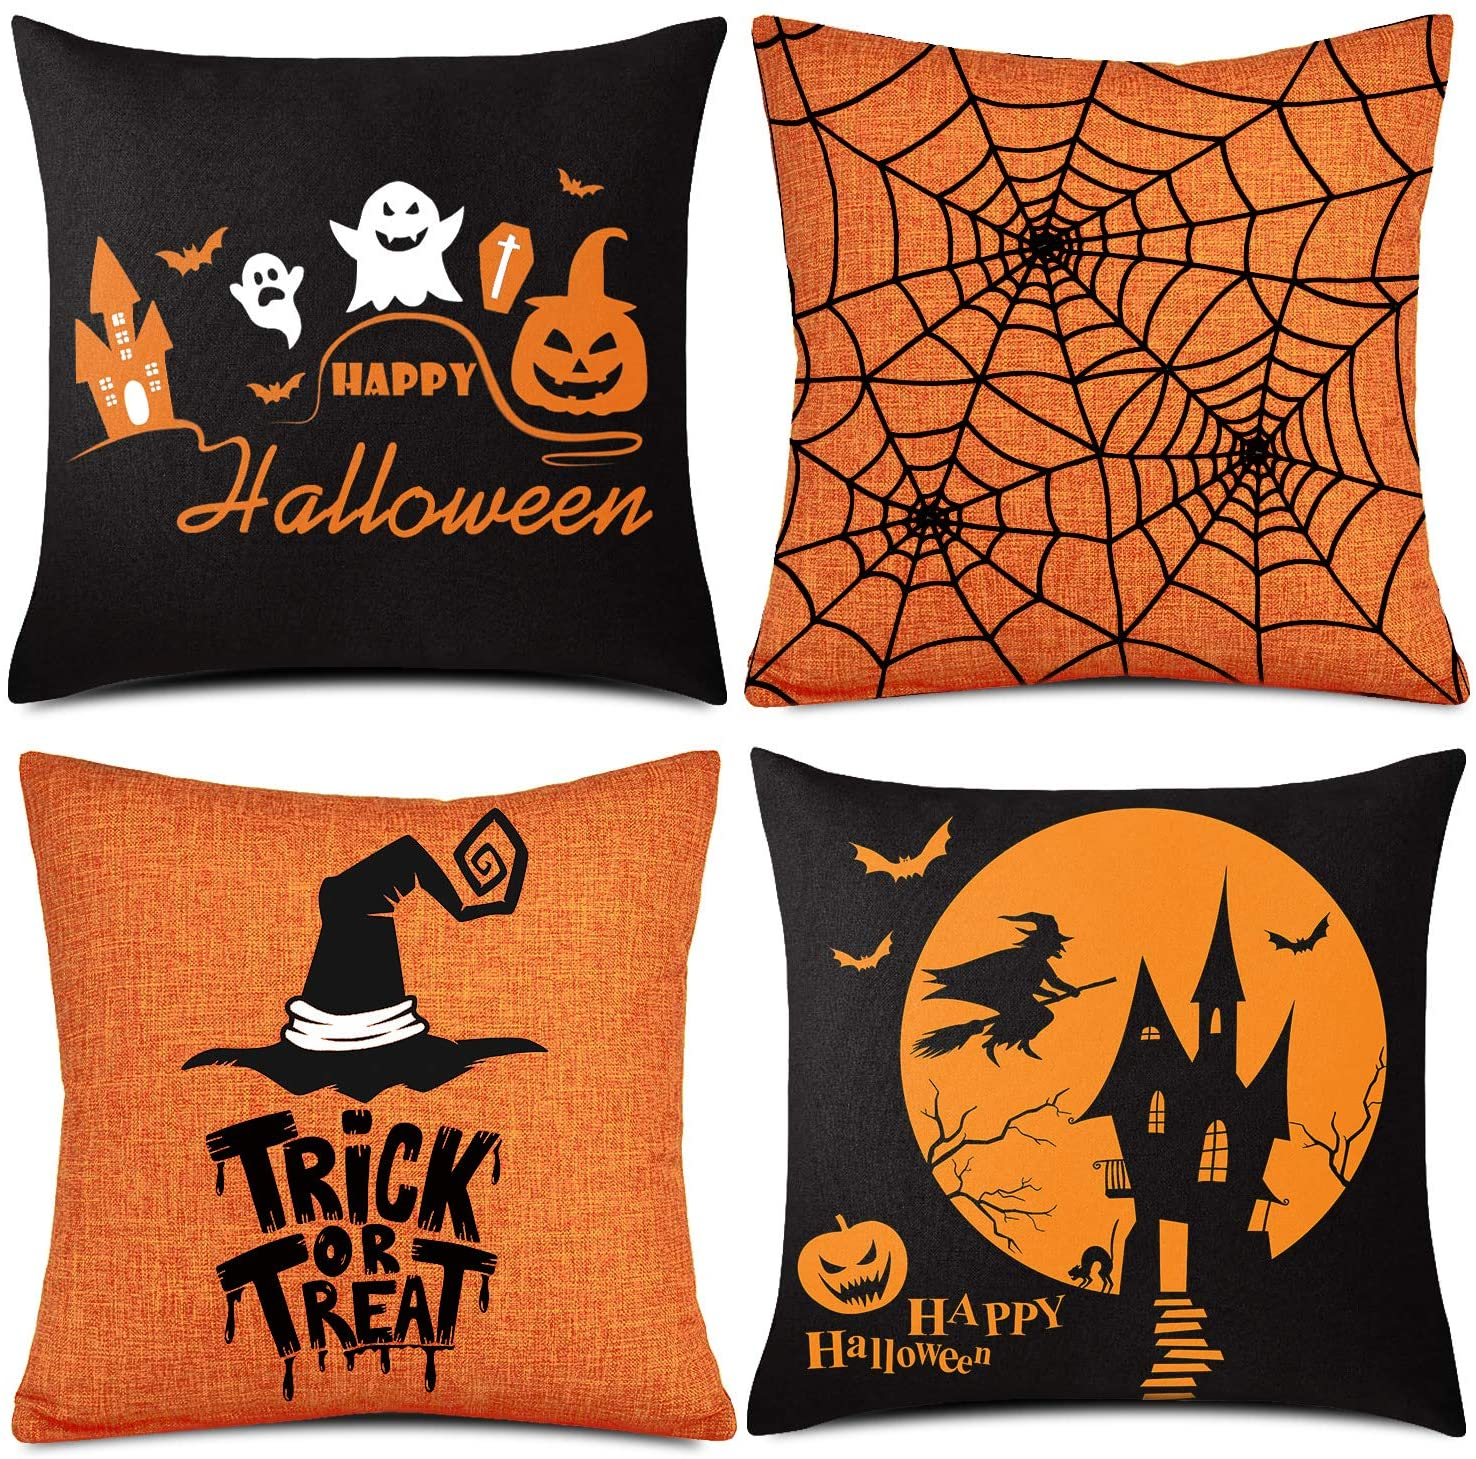 Amazon Com Whaline 4 Pieces Halloween Pillow Case Orange And Black Pillow Cover Happy Halloween Linen Sofa Bed Throw Cushion Cover Decoration 18 X 18 Home Kitchen